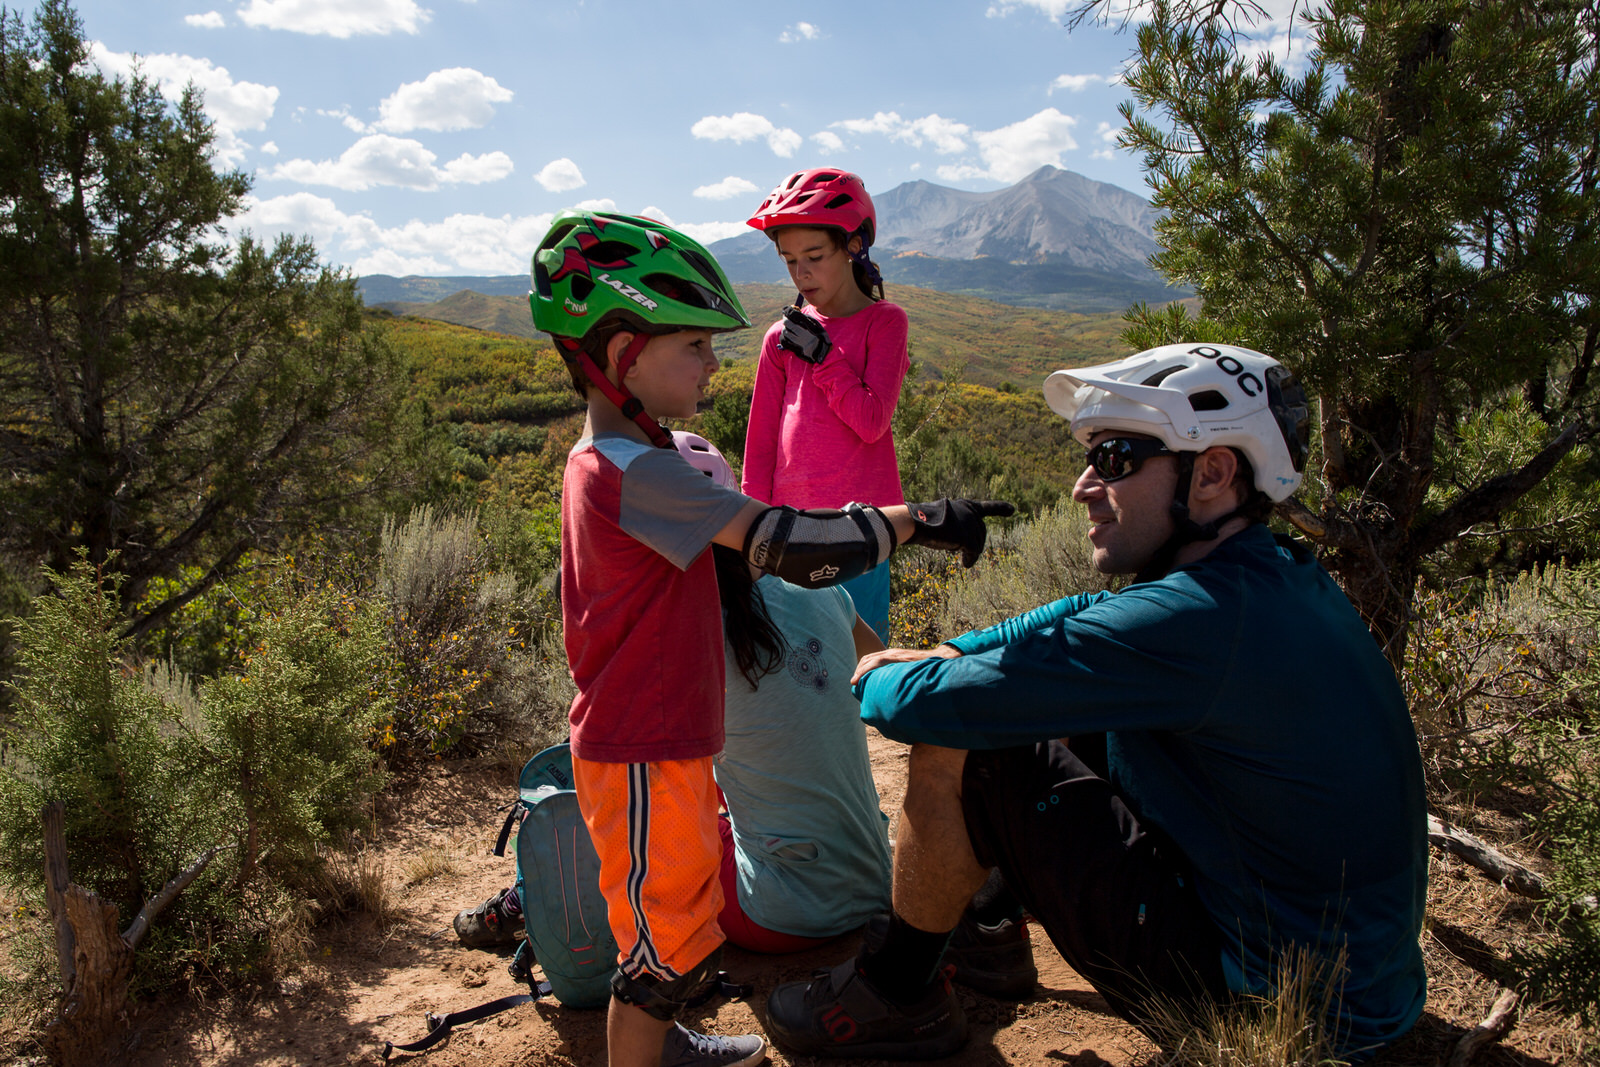 family resting during a biking adventure in aspen colorado photographed by casie zalud